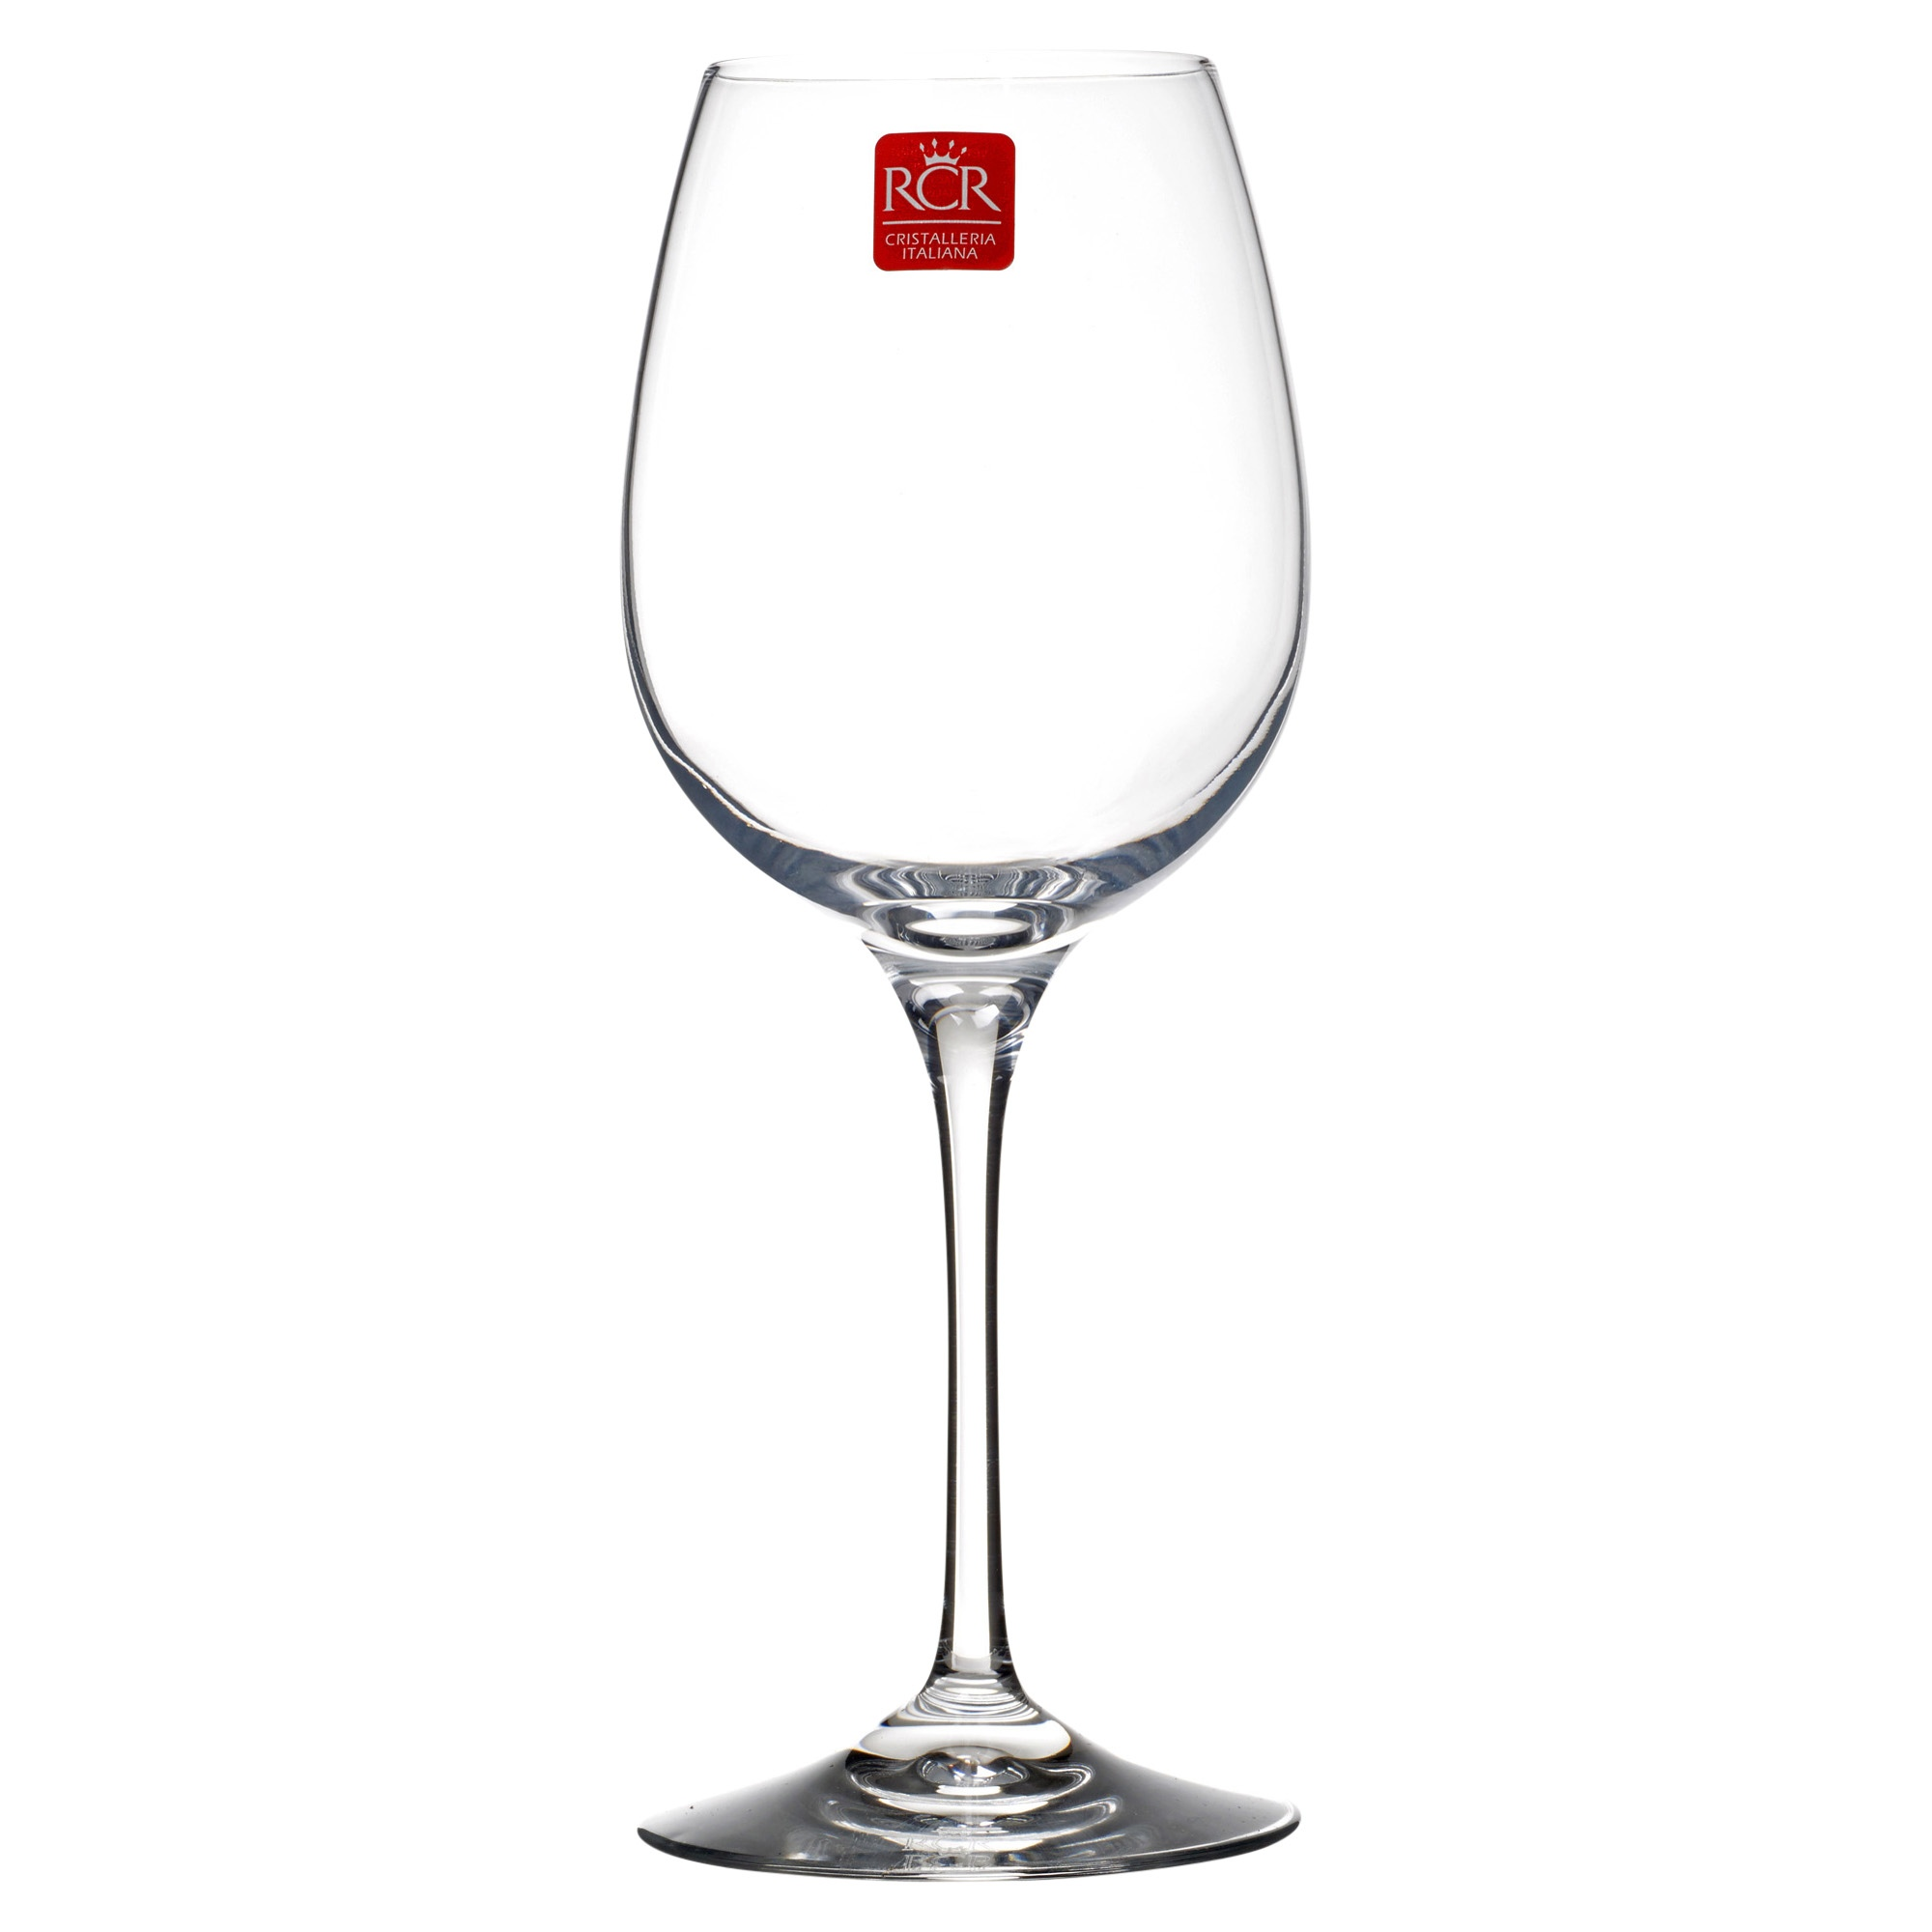 RCR Toscana Glass Crystal Red Wine Glasses Dinner Gifted  : rcr red wine x2 458780  from www.ebay.co.uk size 2000 x 2000 jpeg 137kB